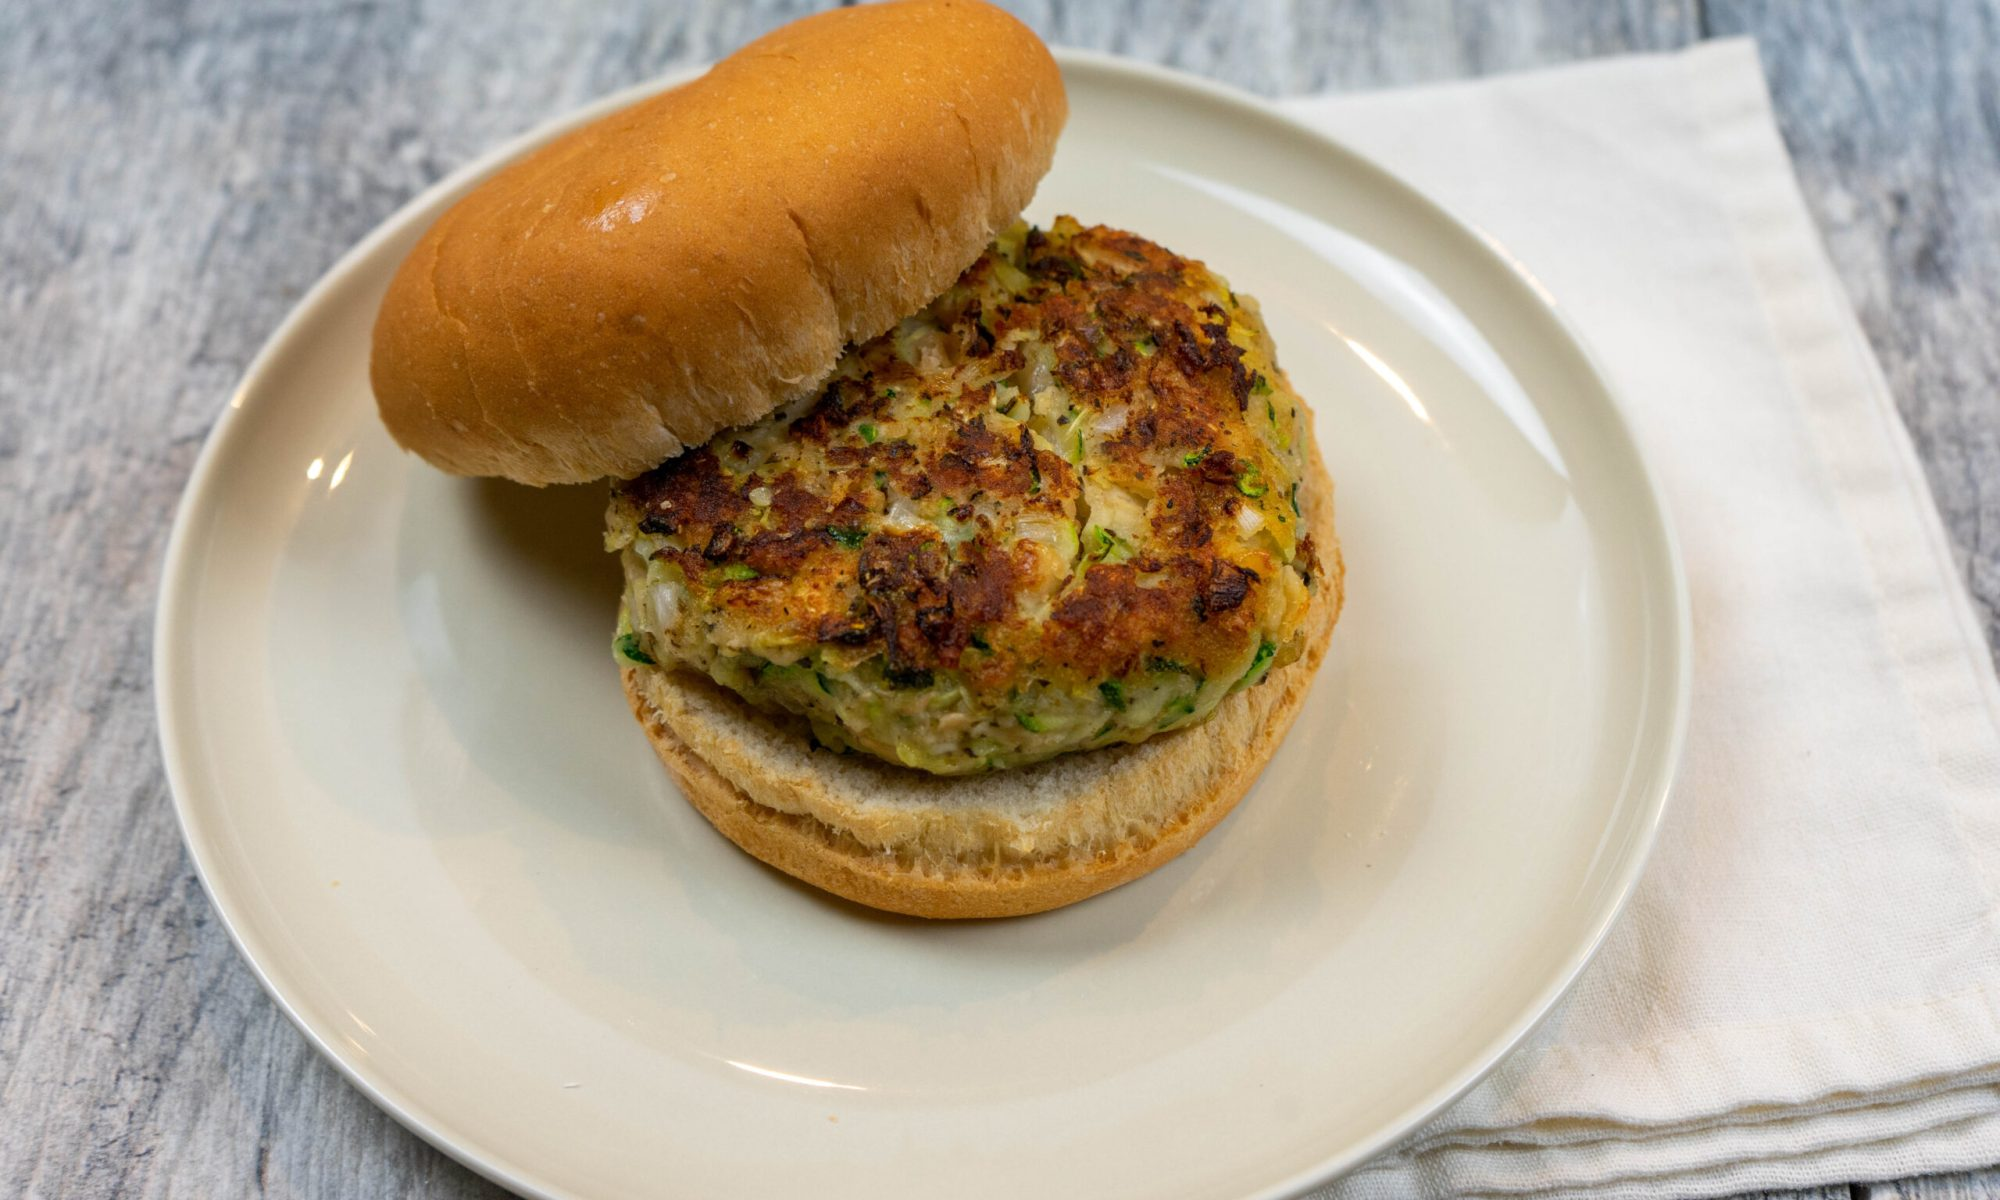 Zucchini Burgers - The Vegan Rhino